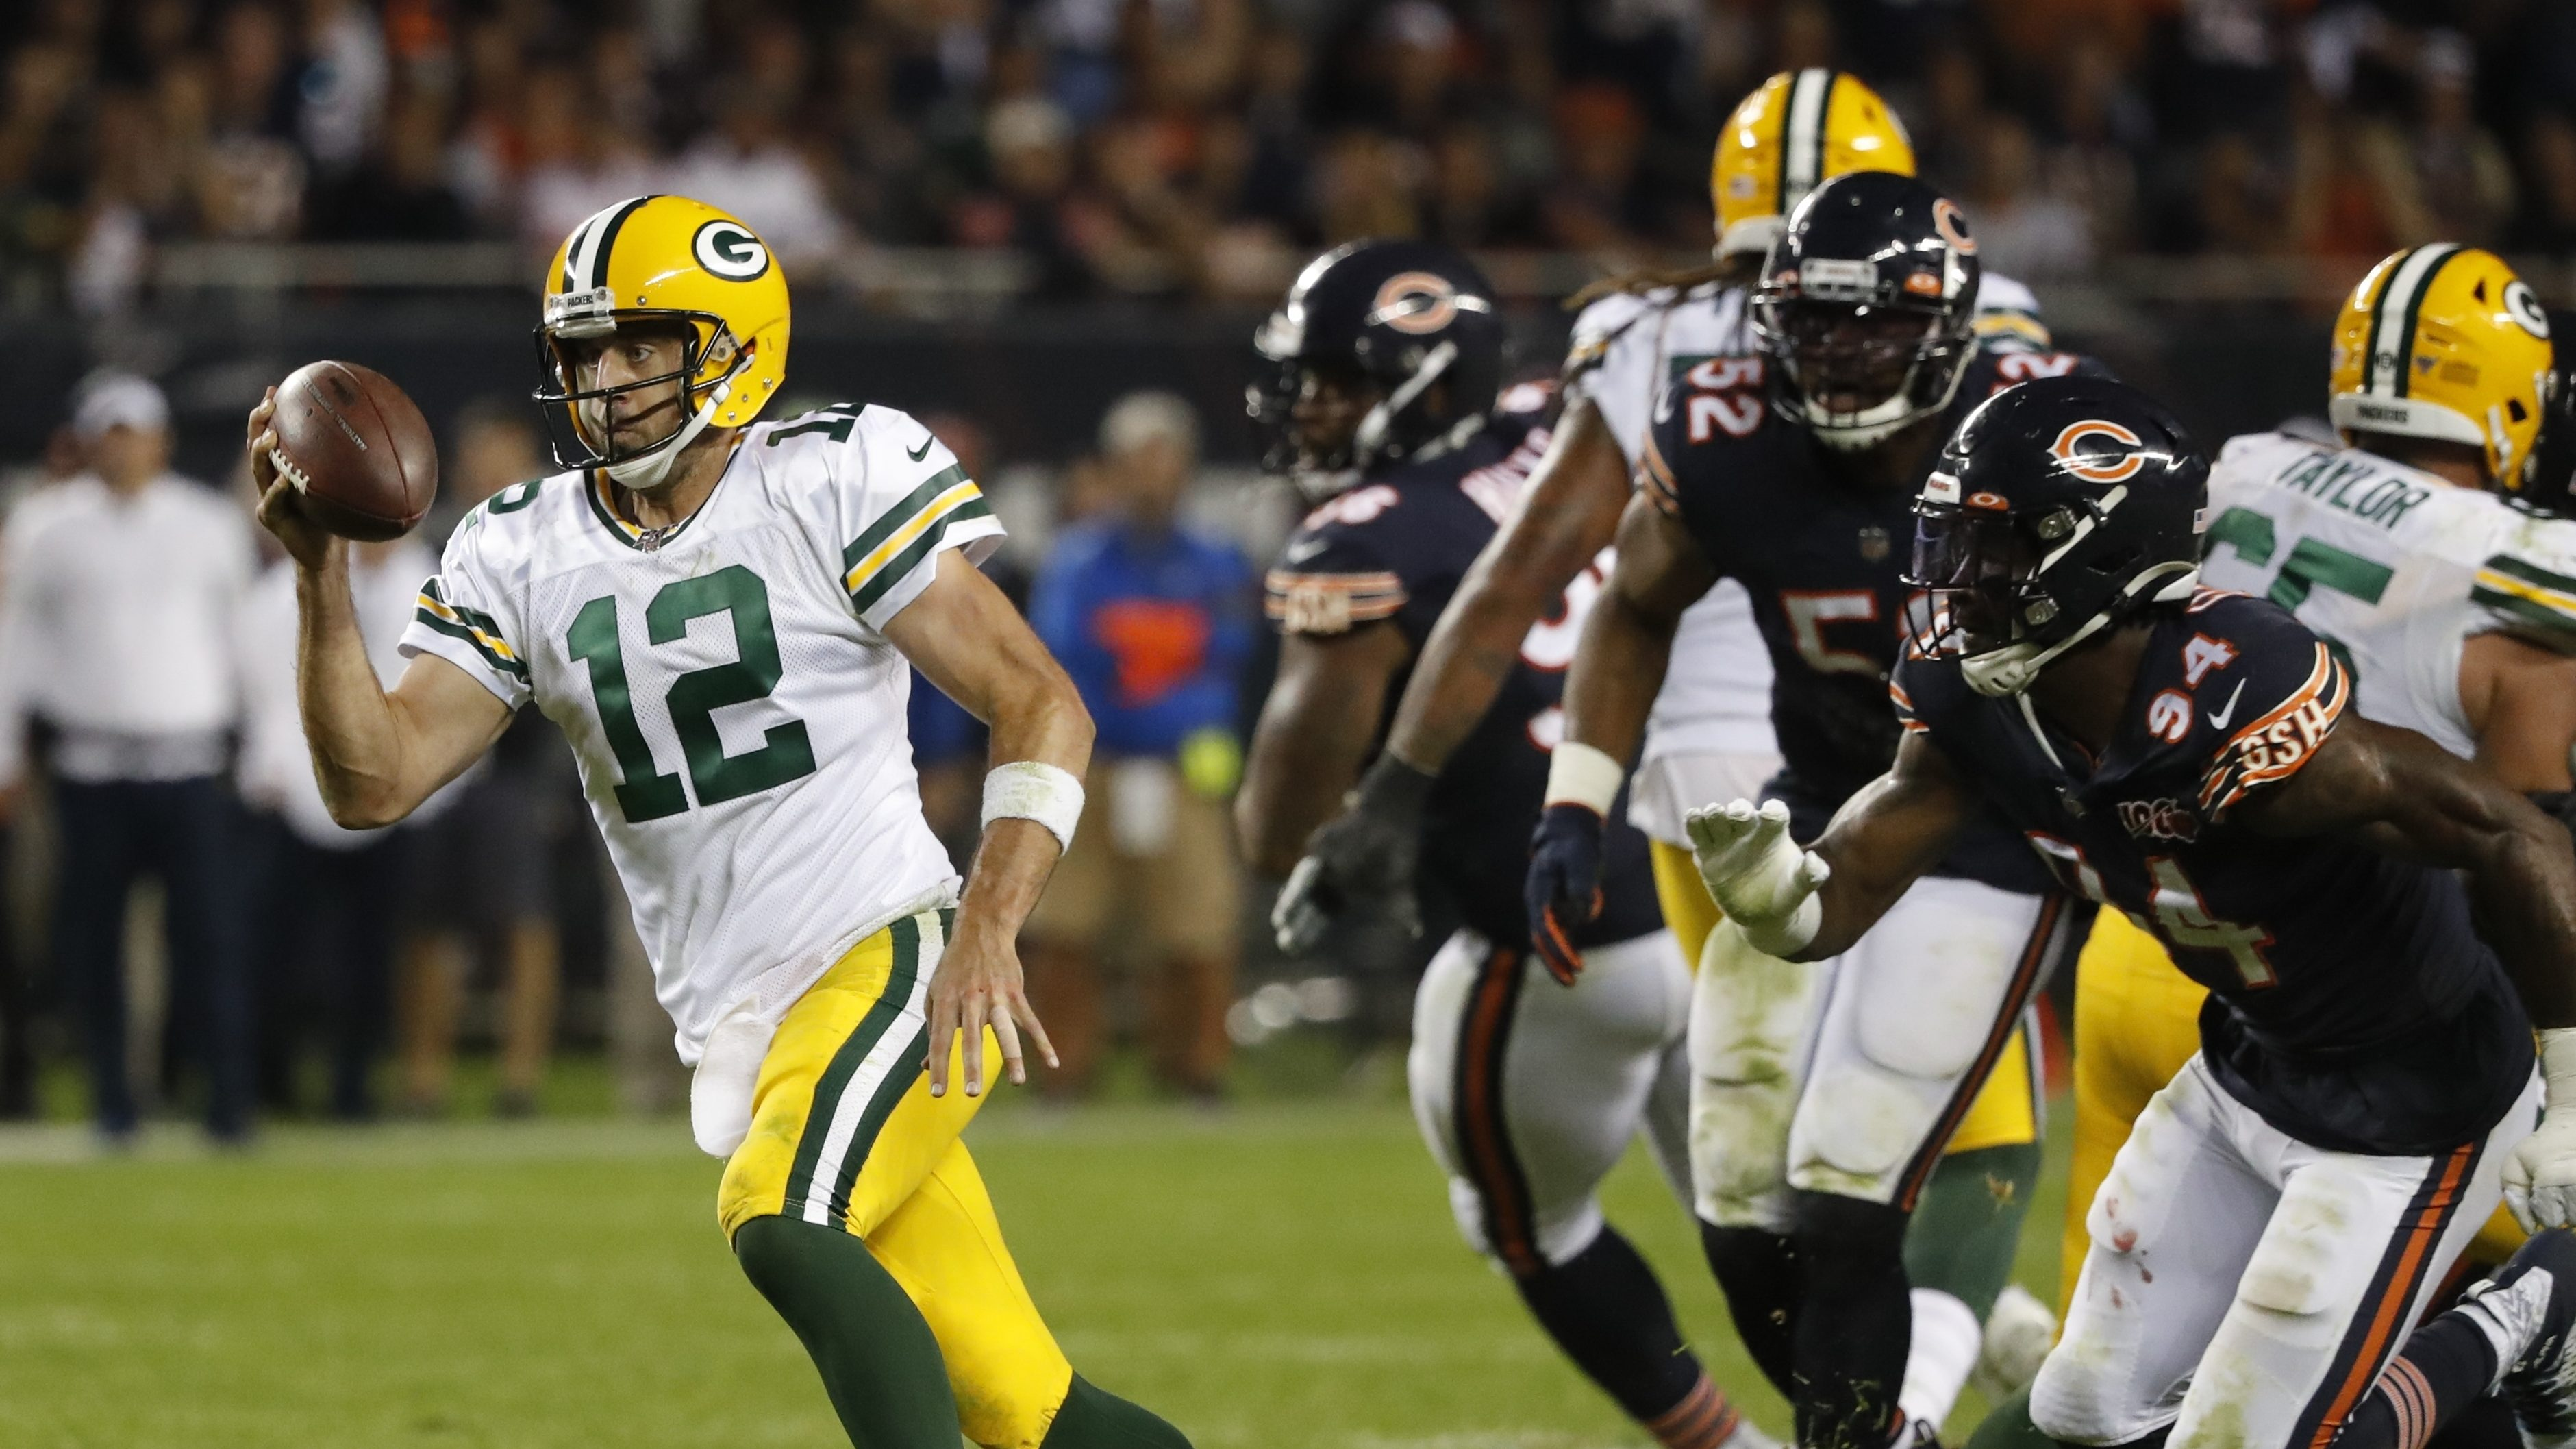 Packers Beat Bears Nfl 100th Season Kickoff Game Ratings Rise Deadline